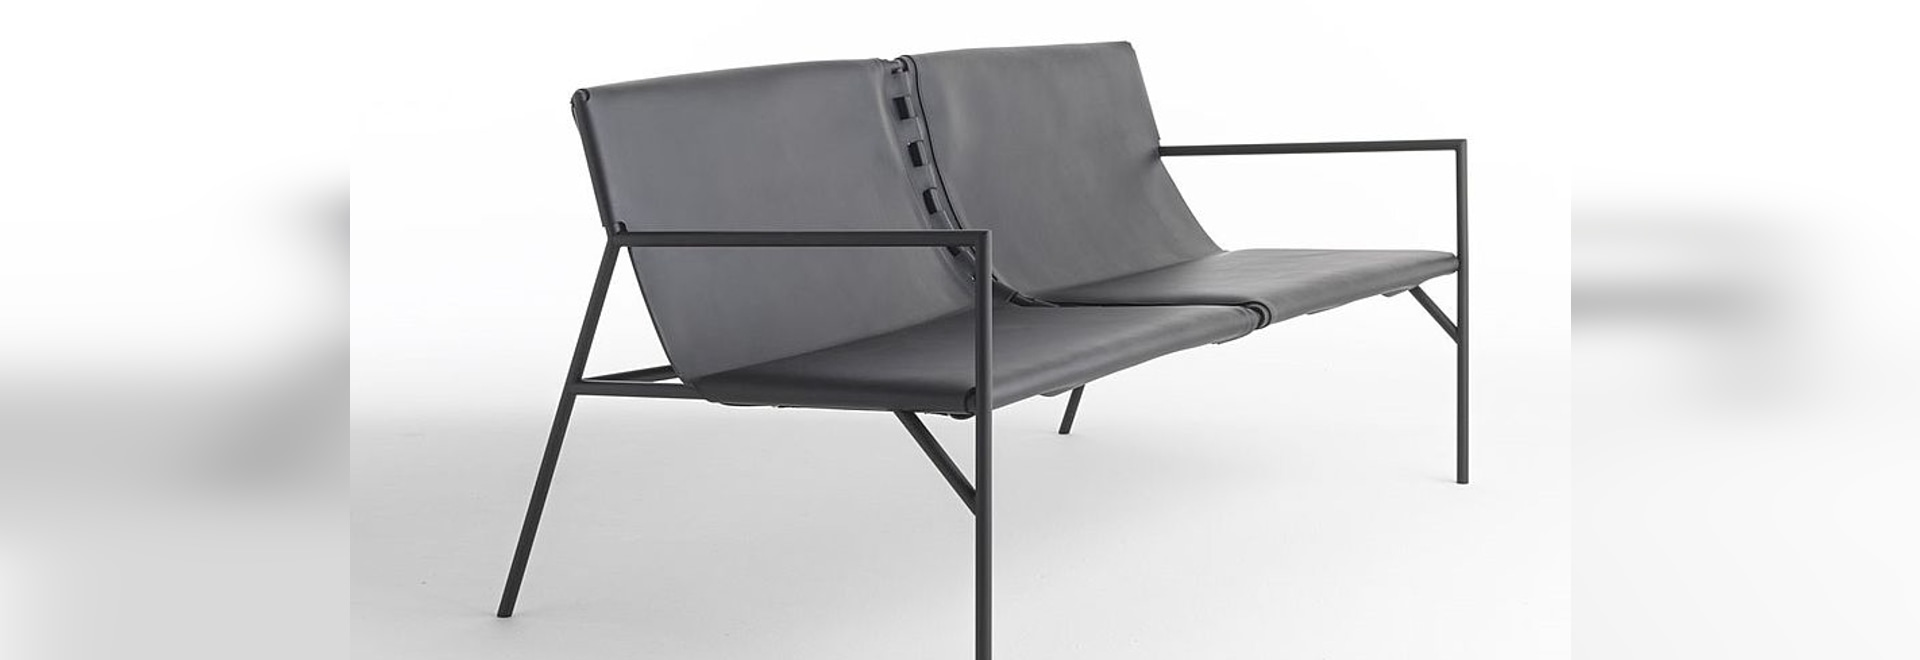 NEW: contemporary sofa by HORM.IT